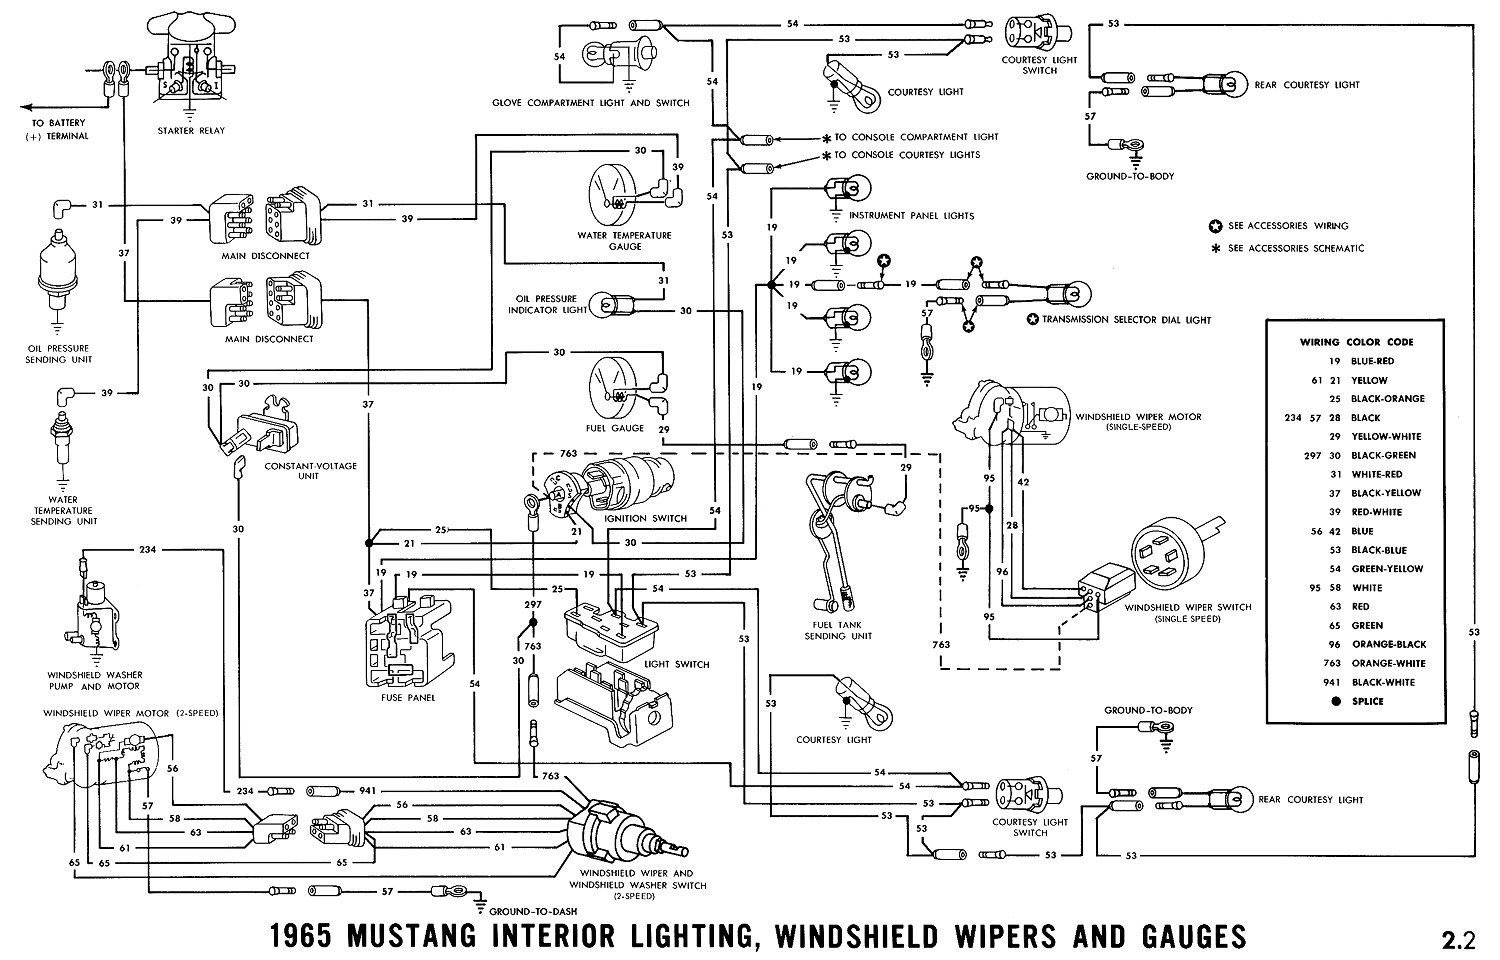 1965g 1965 mustang wiring diagram 1965 mustang column wiring diagram Wire Gauge at mifinder.co